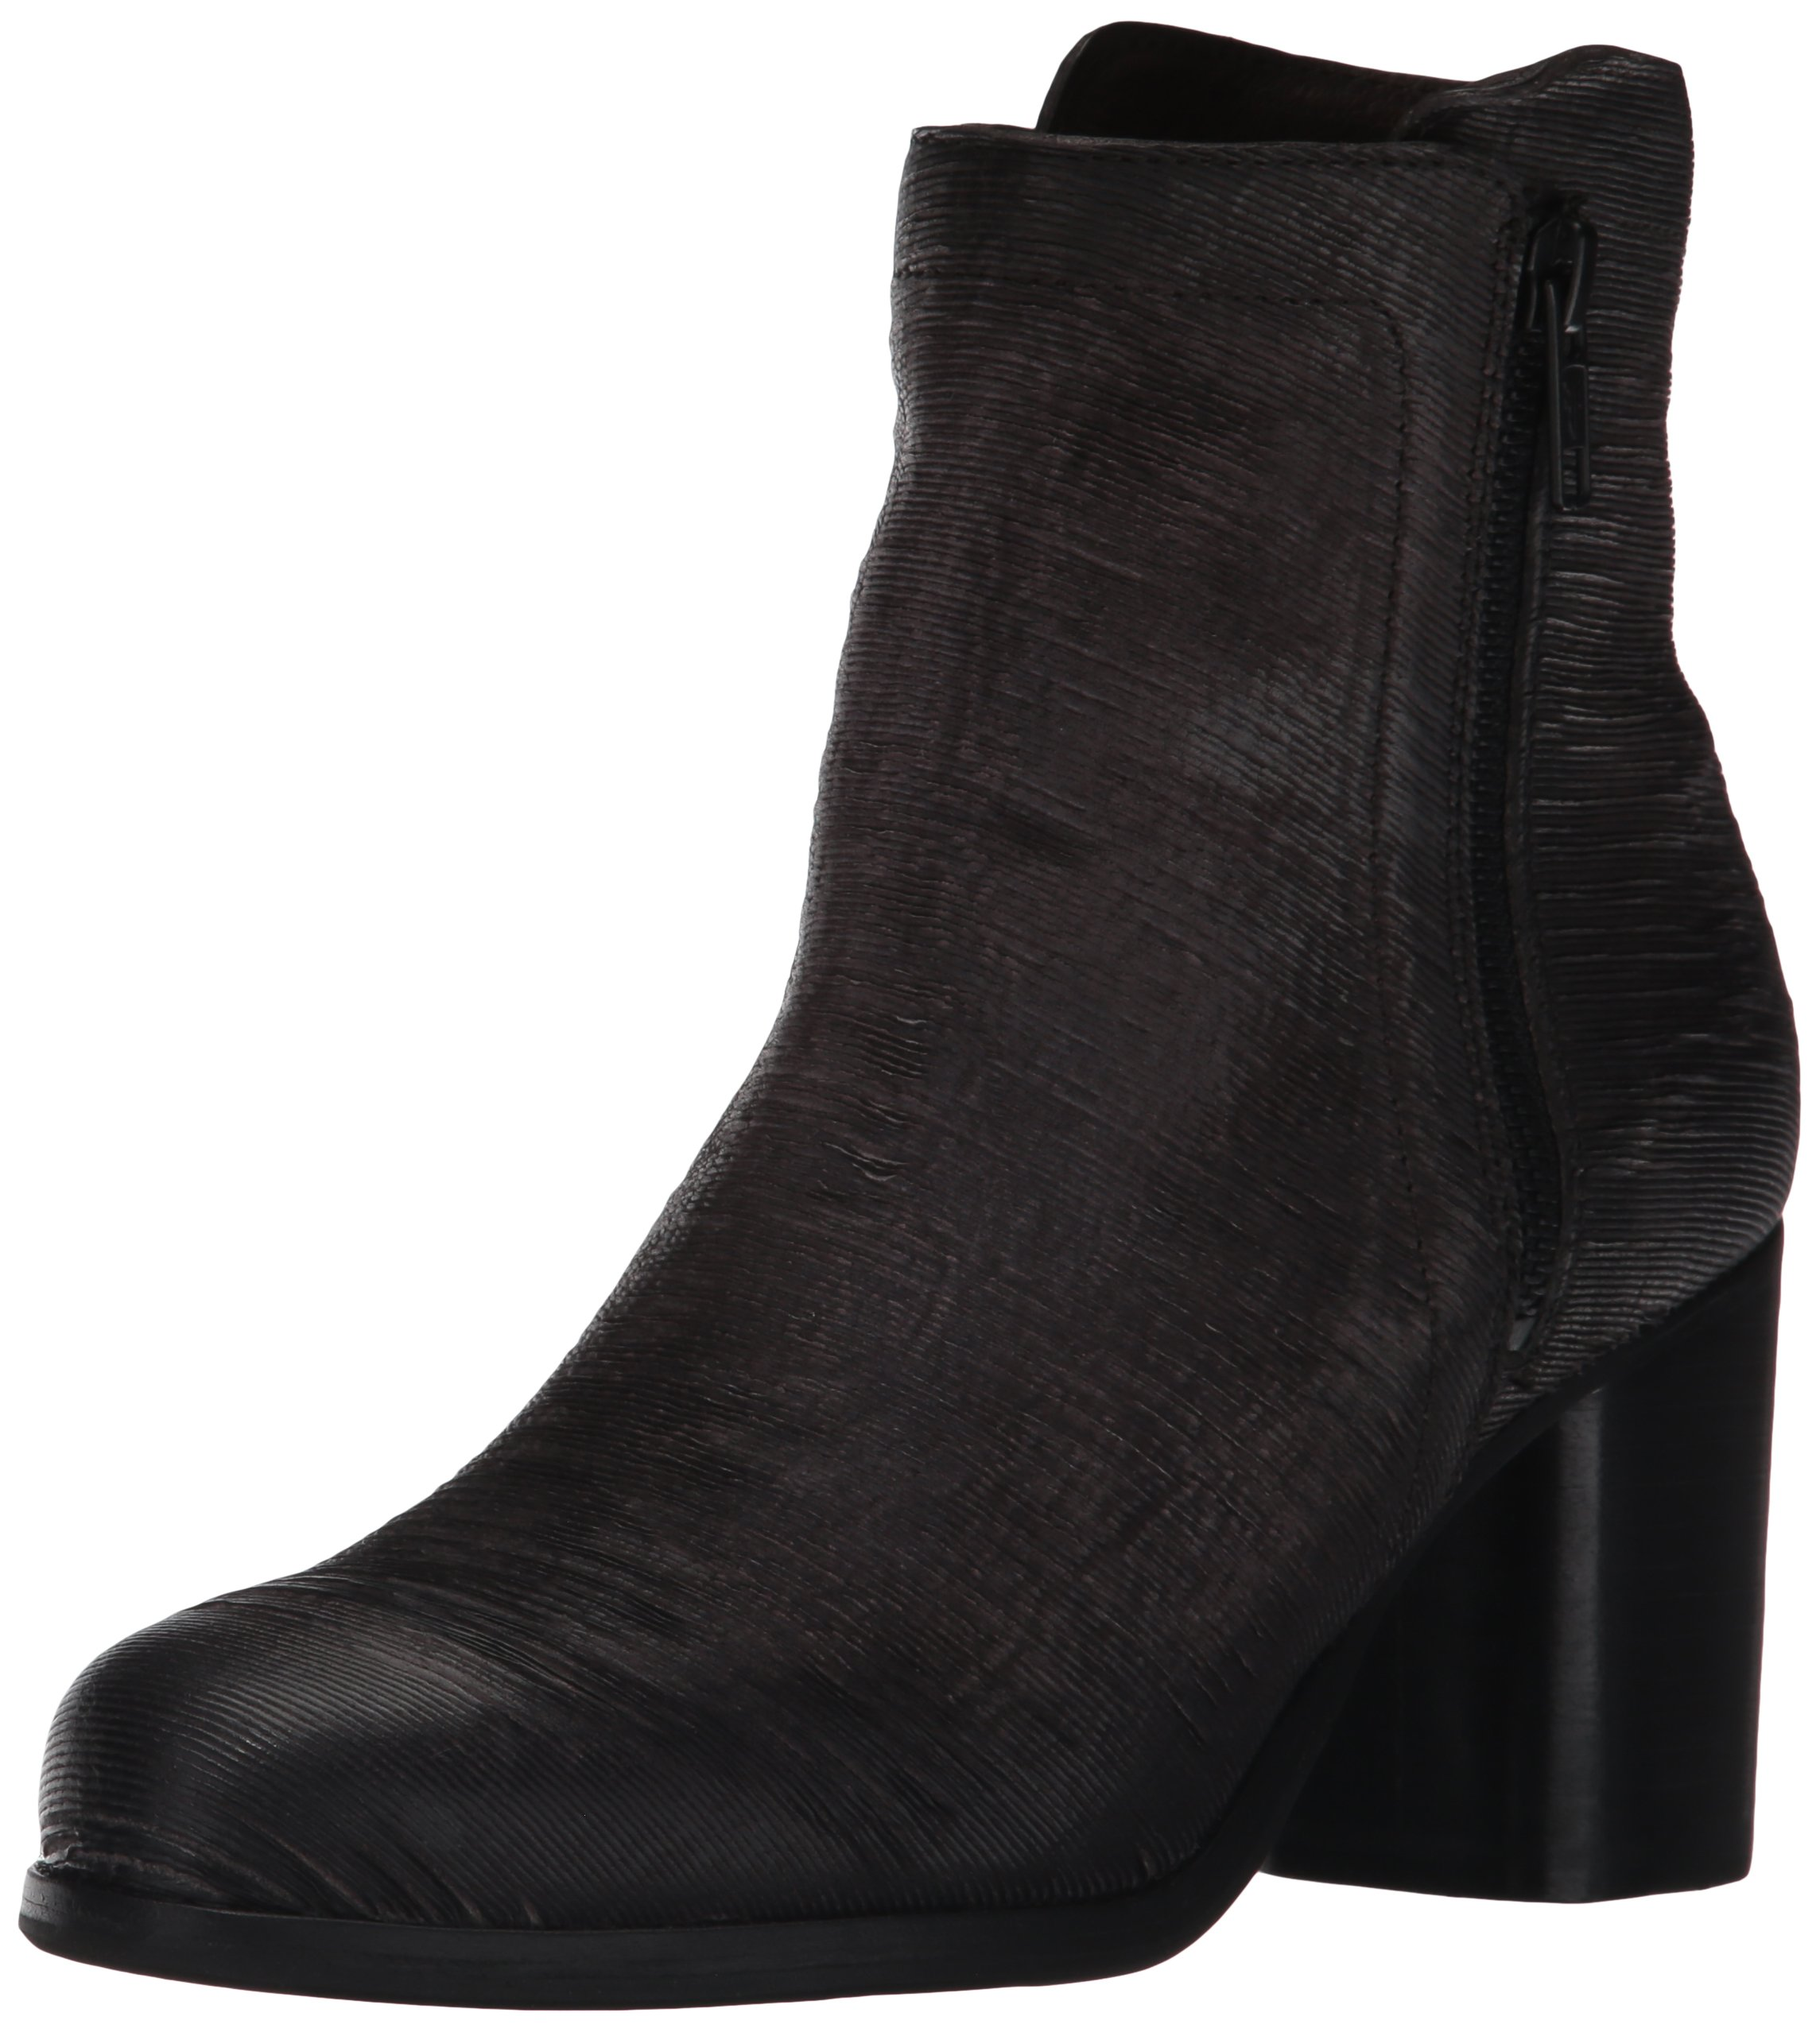 FRYE Women's Addie Double Zip Boot, Charcoal Cut Vintage Leather, 8.5 M US